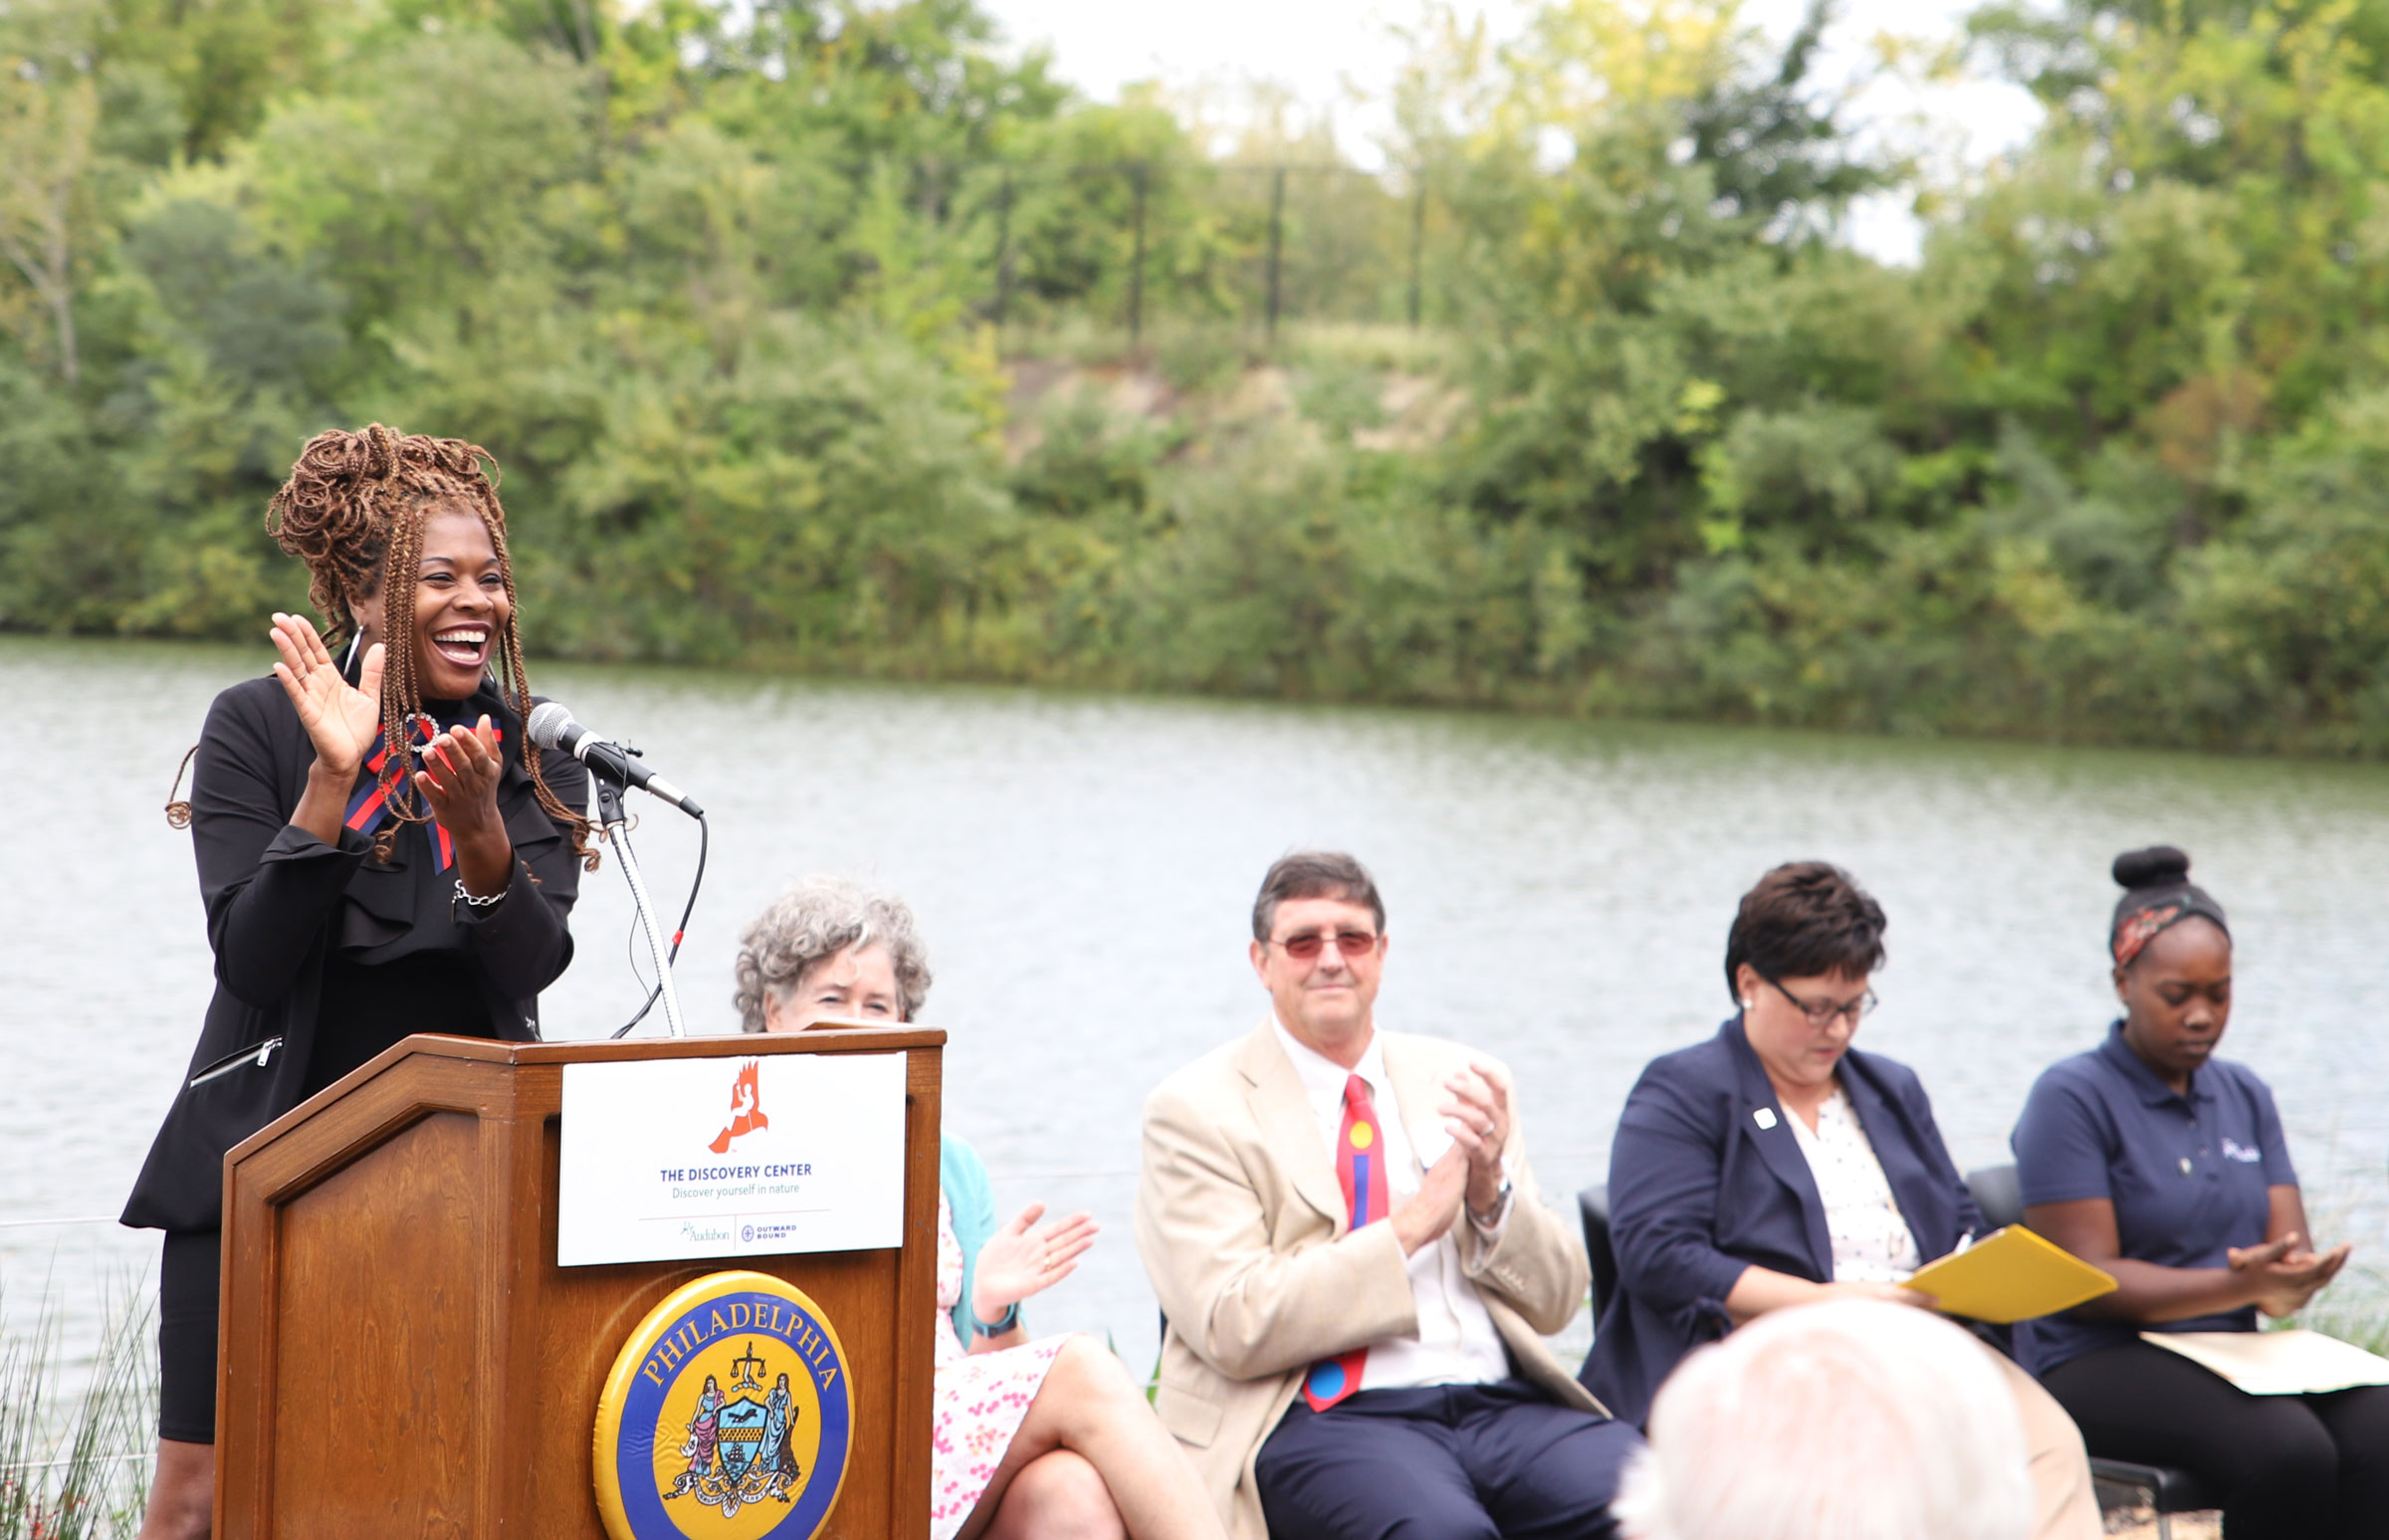 Tonnetta Graham gives the opening remarks at the Discovery Center ribbon cutting on September 28, 2018. Dominic Arenas/Audubon